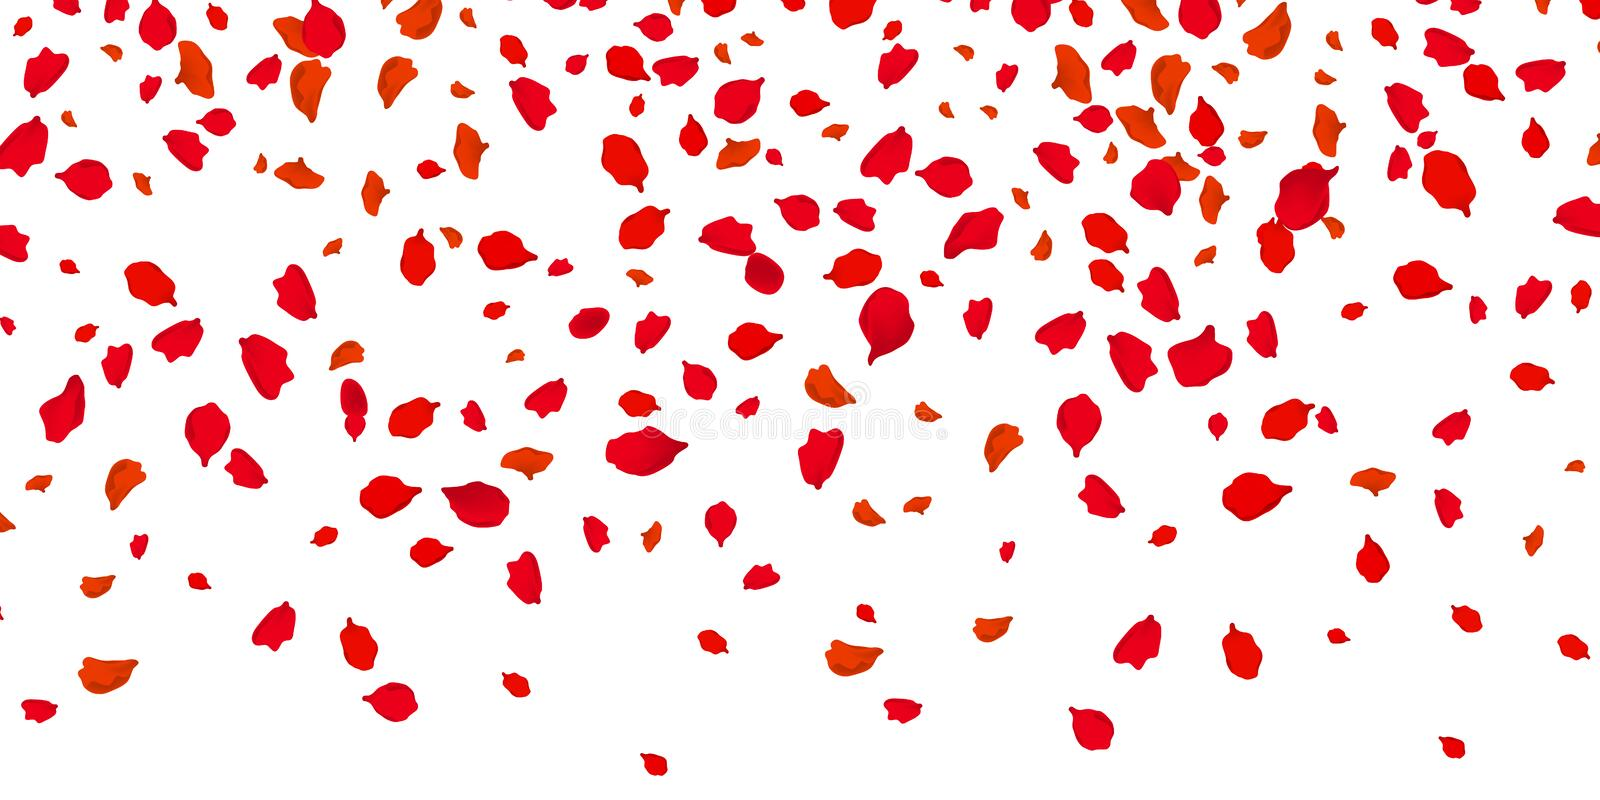 Rose Petals Falling Wallpaper Transparent Gif Flowers Petals Falling On Vector Transparent Background